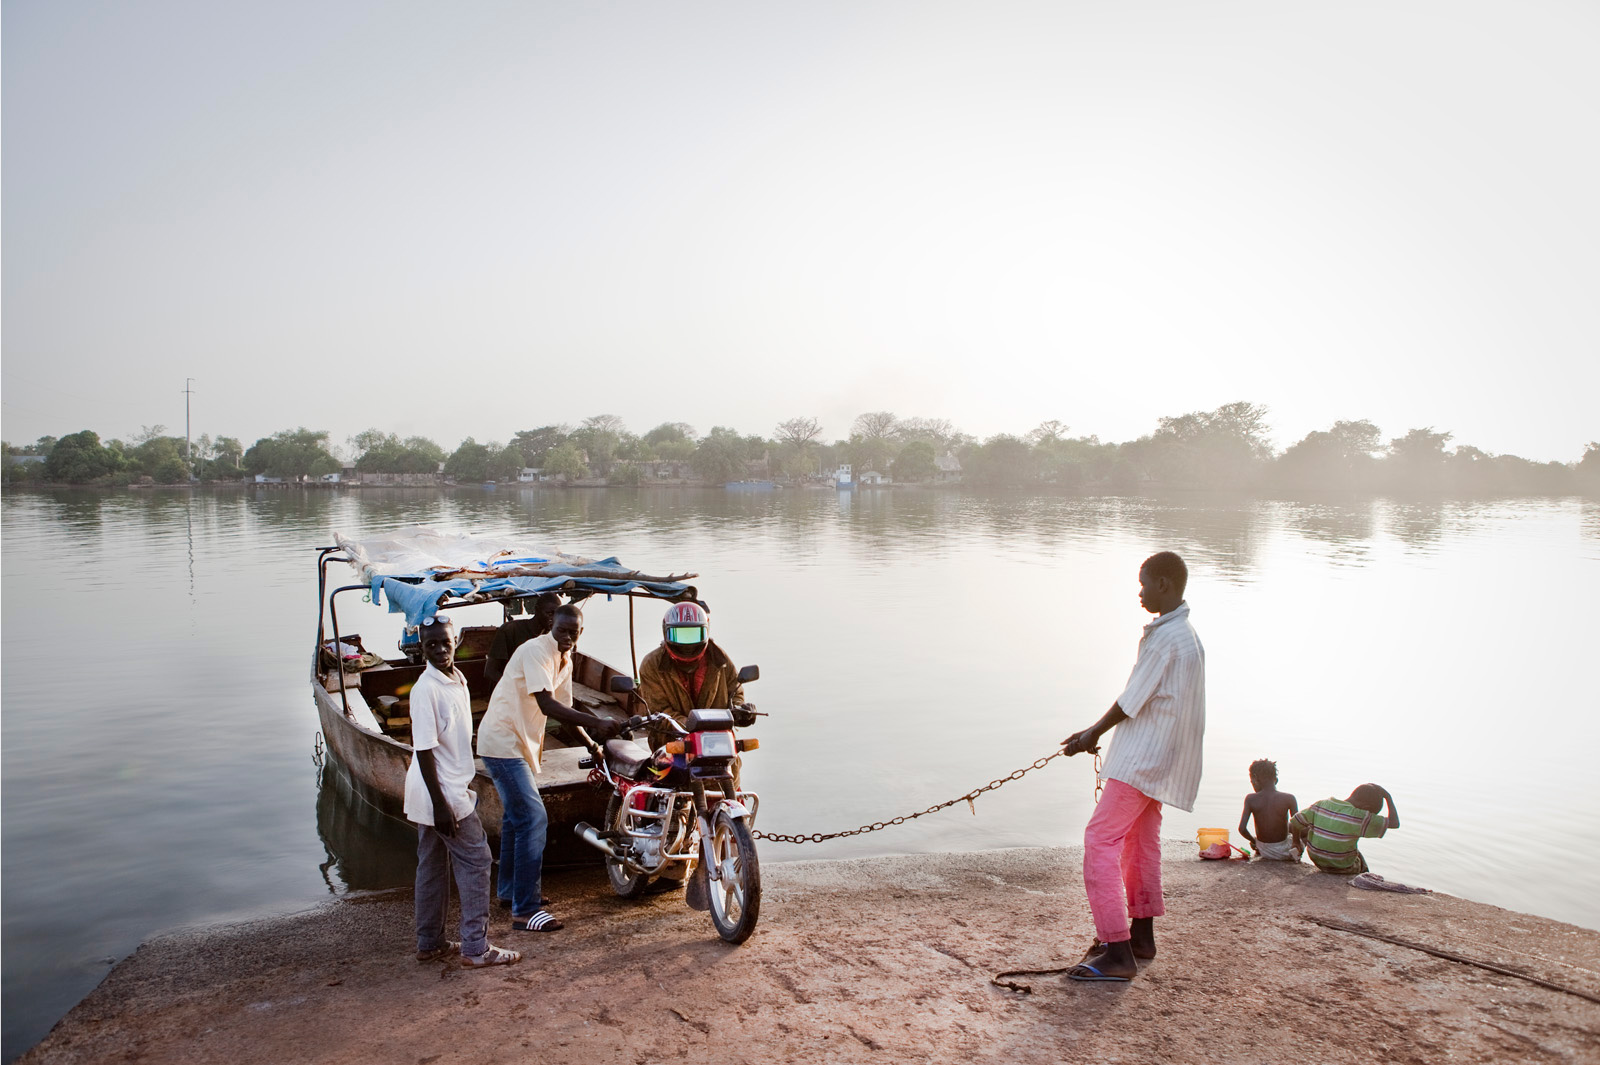 River Gambia - Photo by Jason Florio